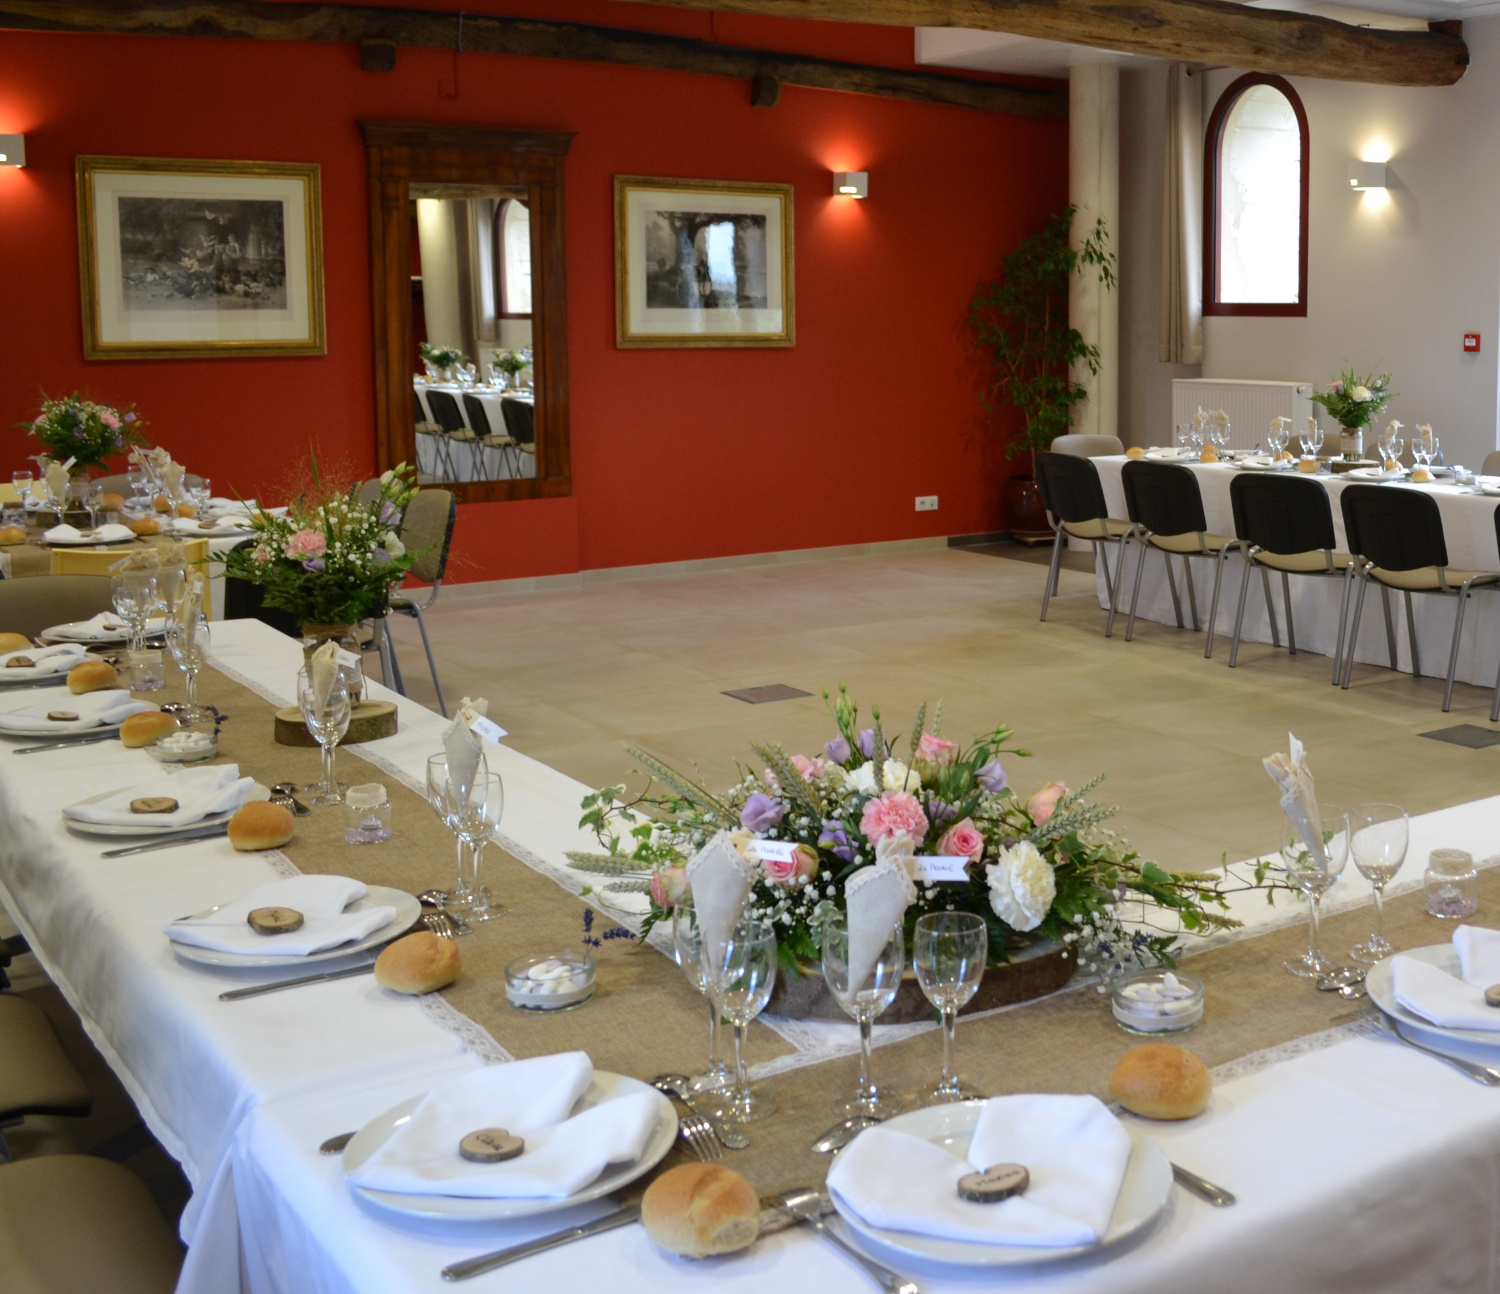 mariage-salle-reception-oise-lacroiseedespossibles